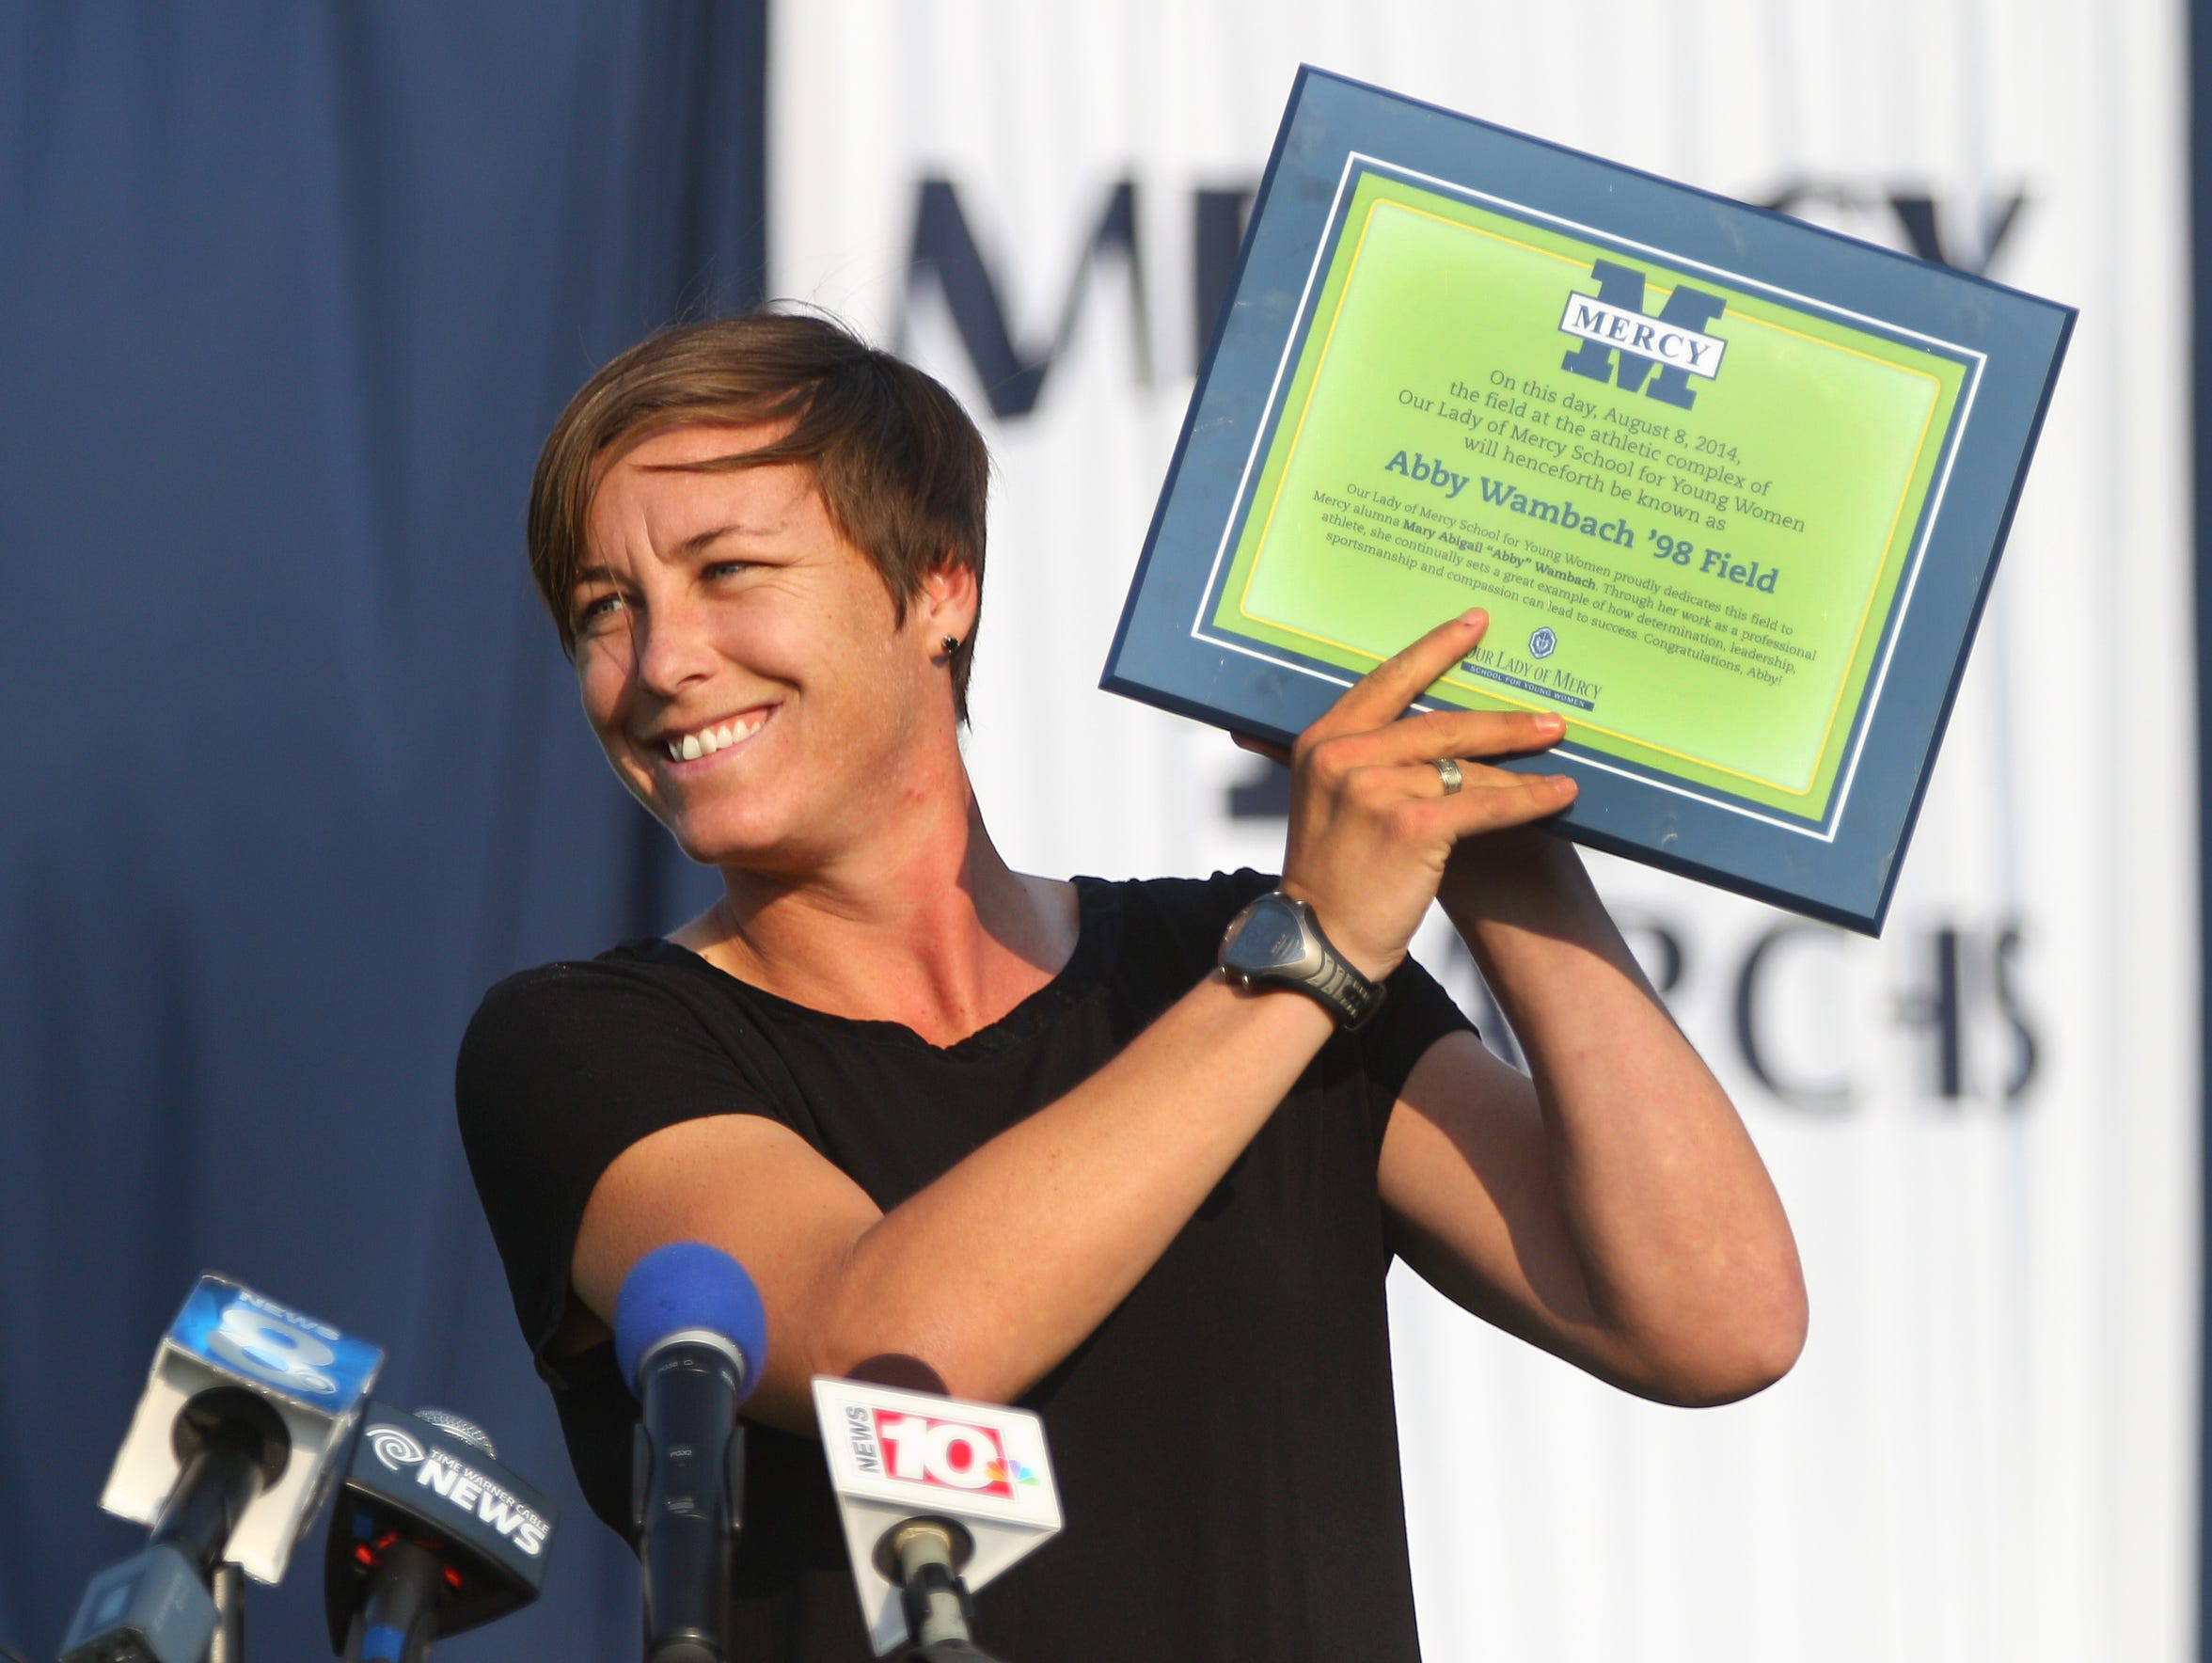 Abby Wambach displays a plaque she received after the